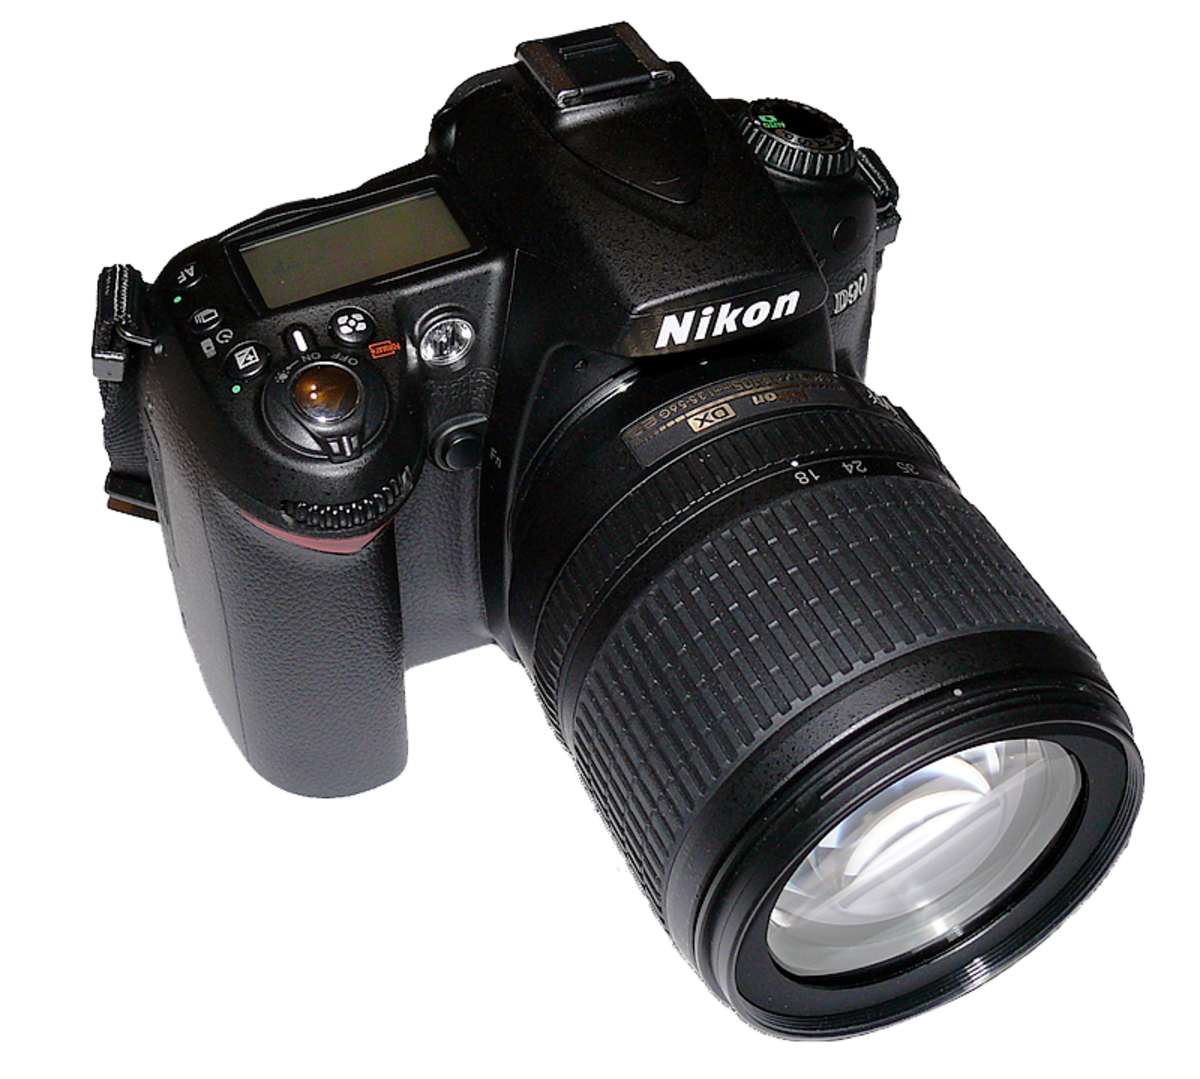 Digital SLR Camera: How to Get a Good DSLR Camera Cheap